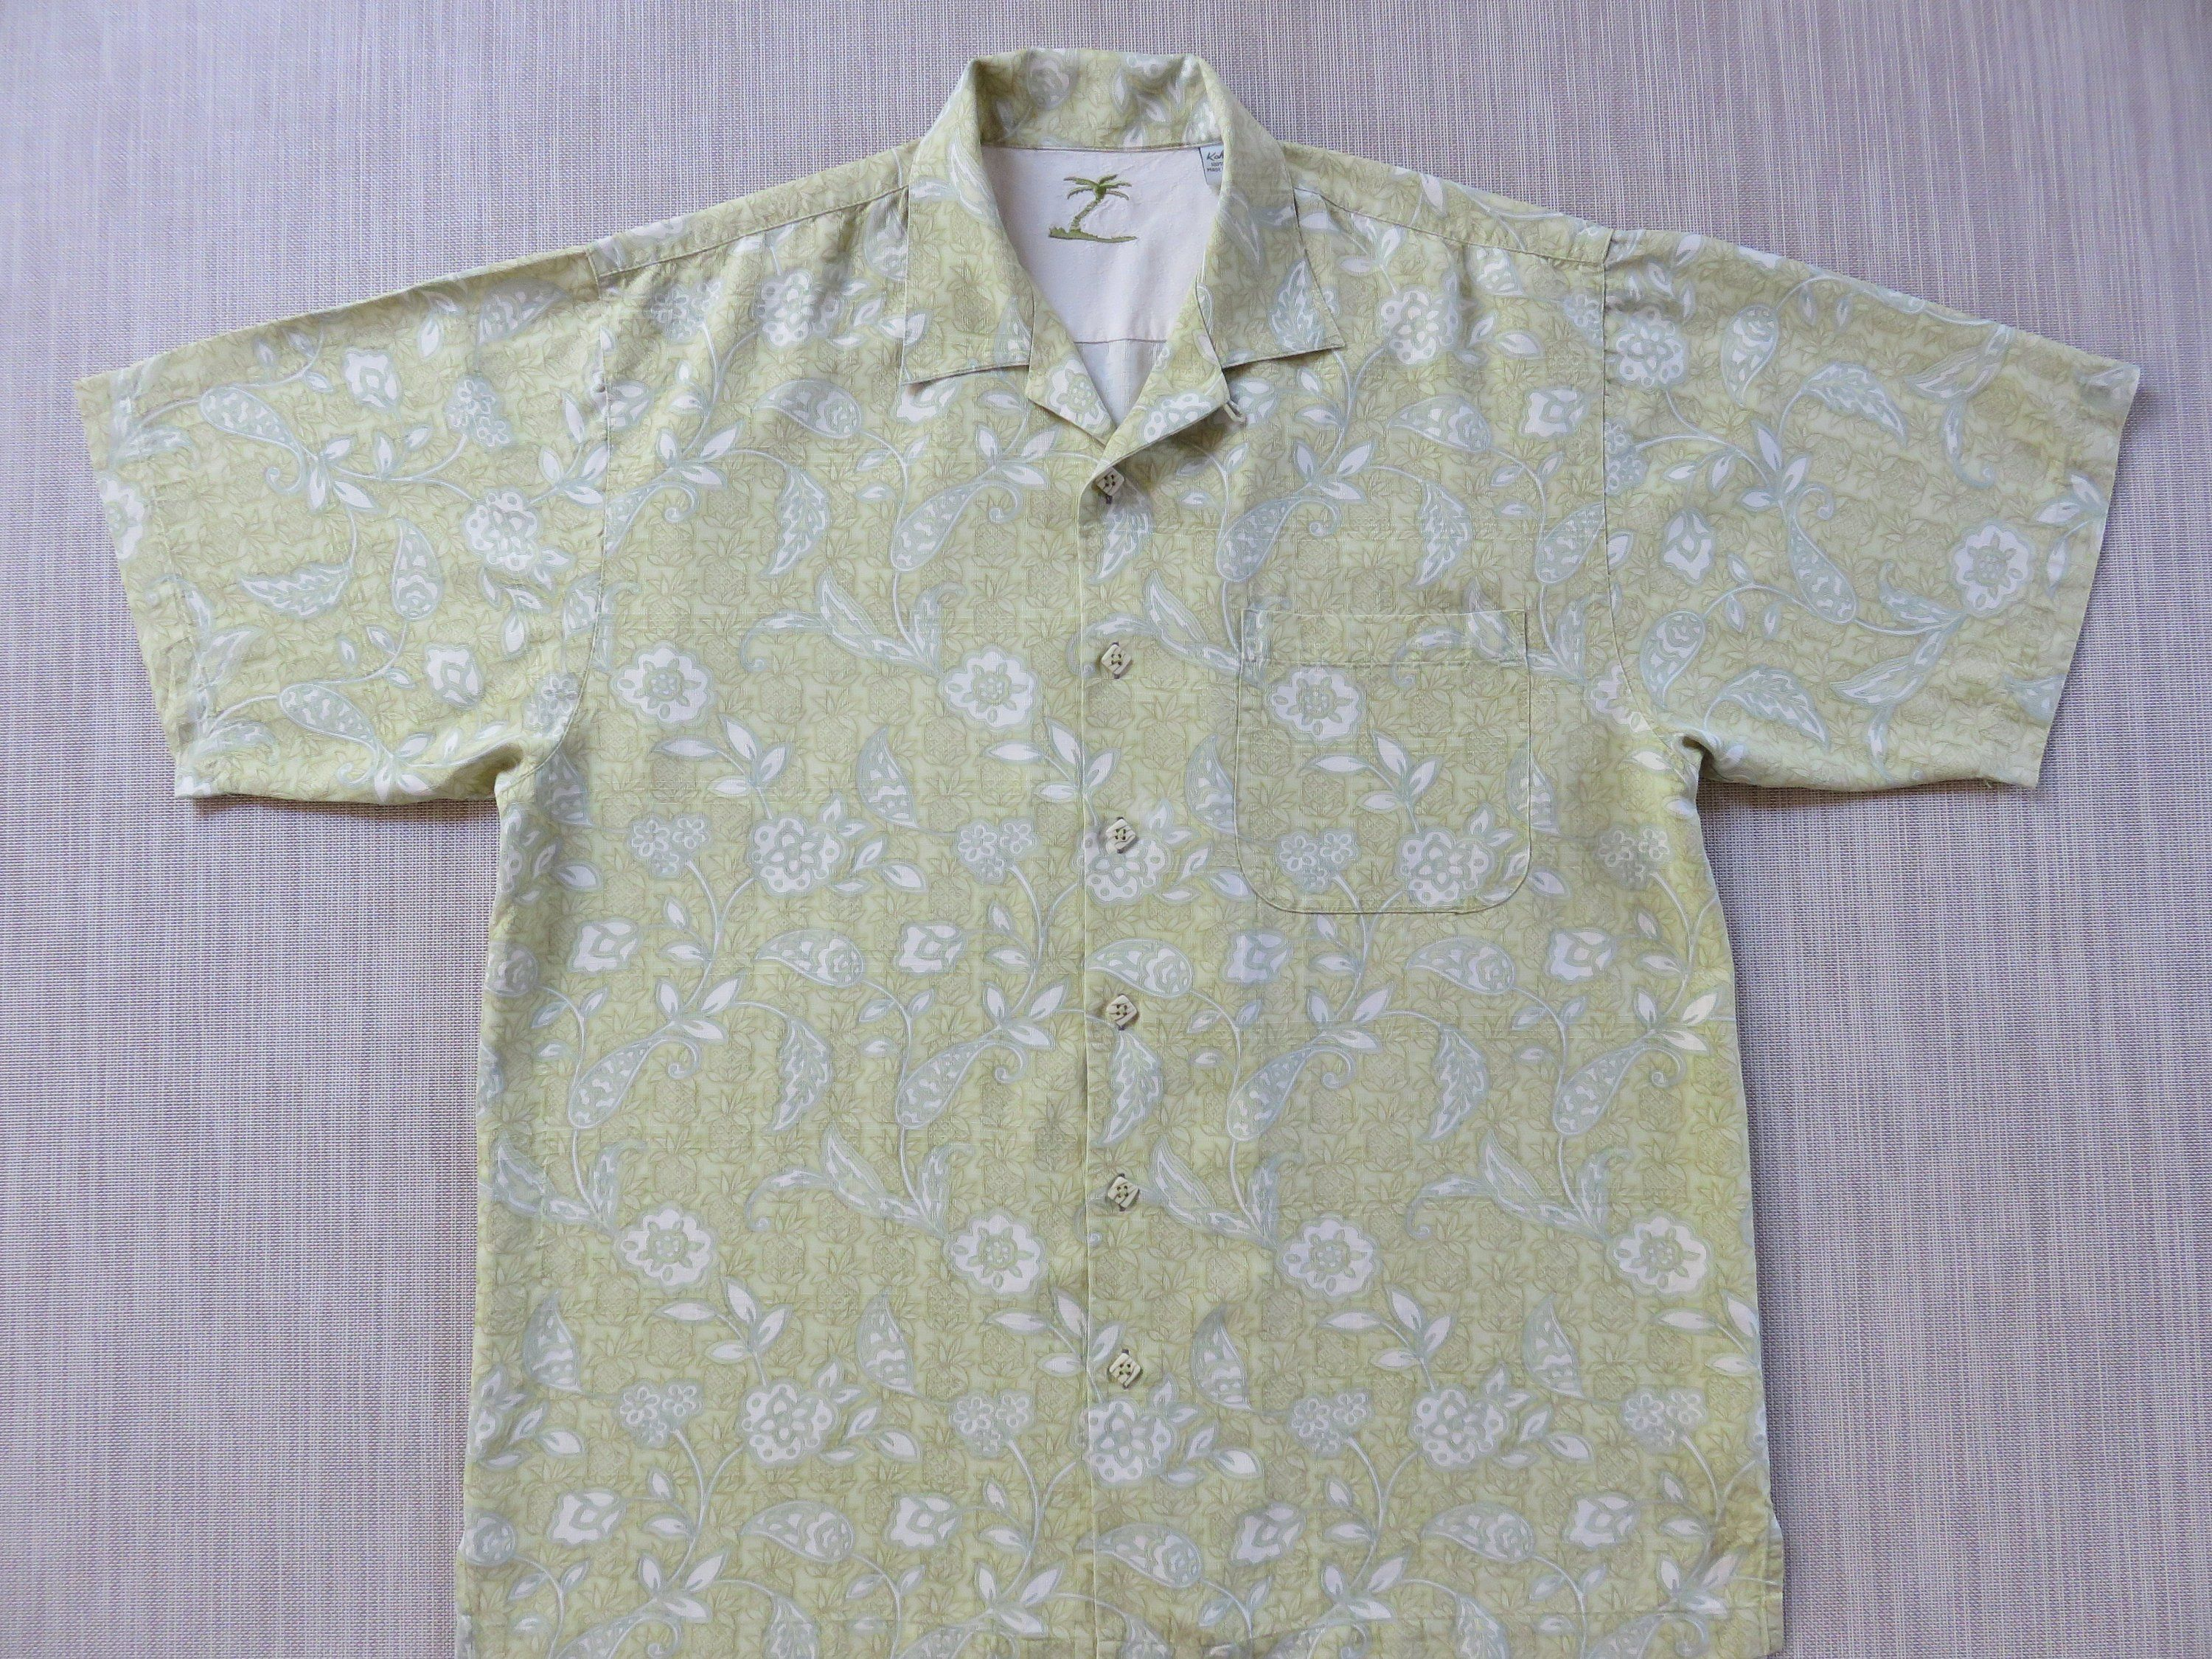 5fd5e841 Silk Hawaiian Shirt KAHALA Aloha Shirt Tropical Paradise Paisley Pineapple  Print Surfer Resort Wear Mens Camp - L - Oahu Lew's Shirt Shack by ...